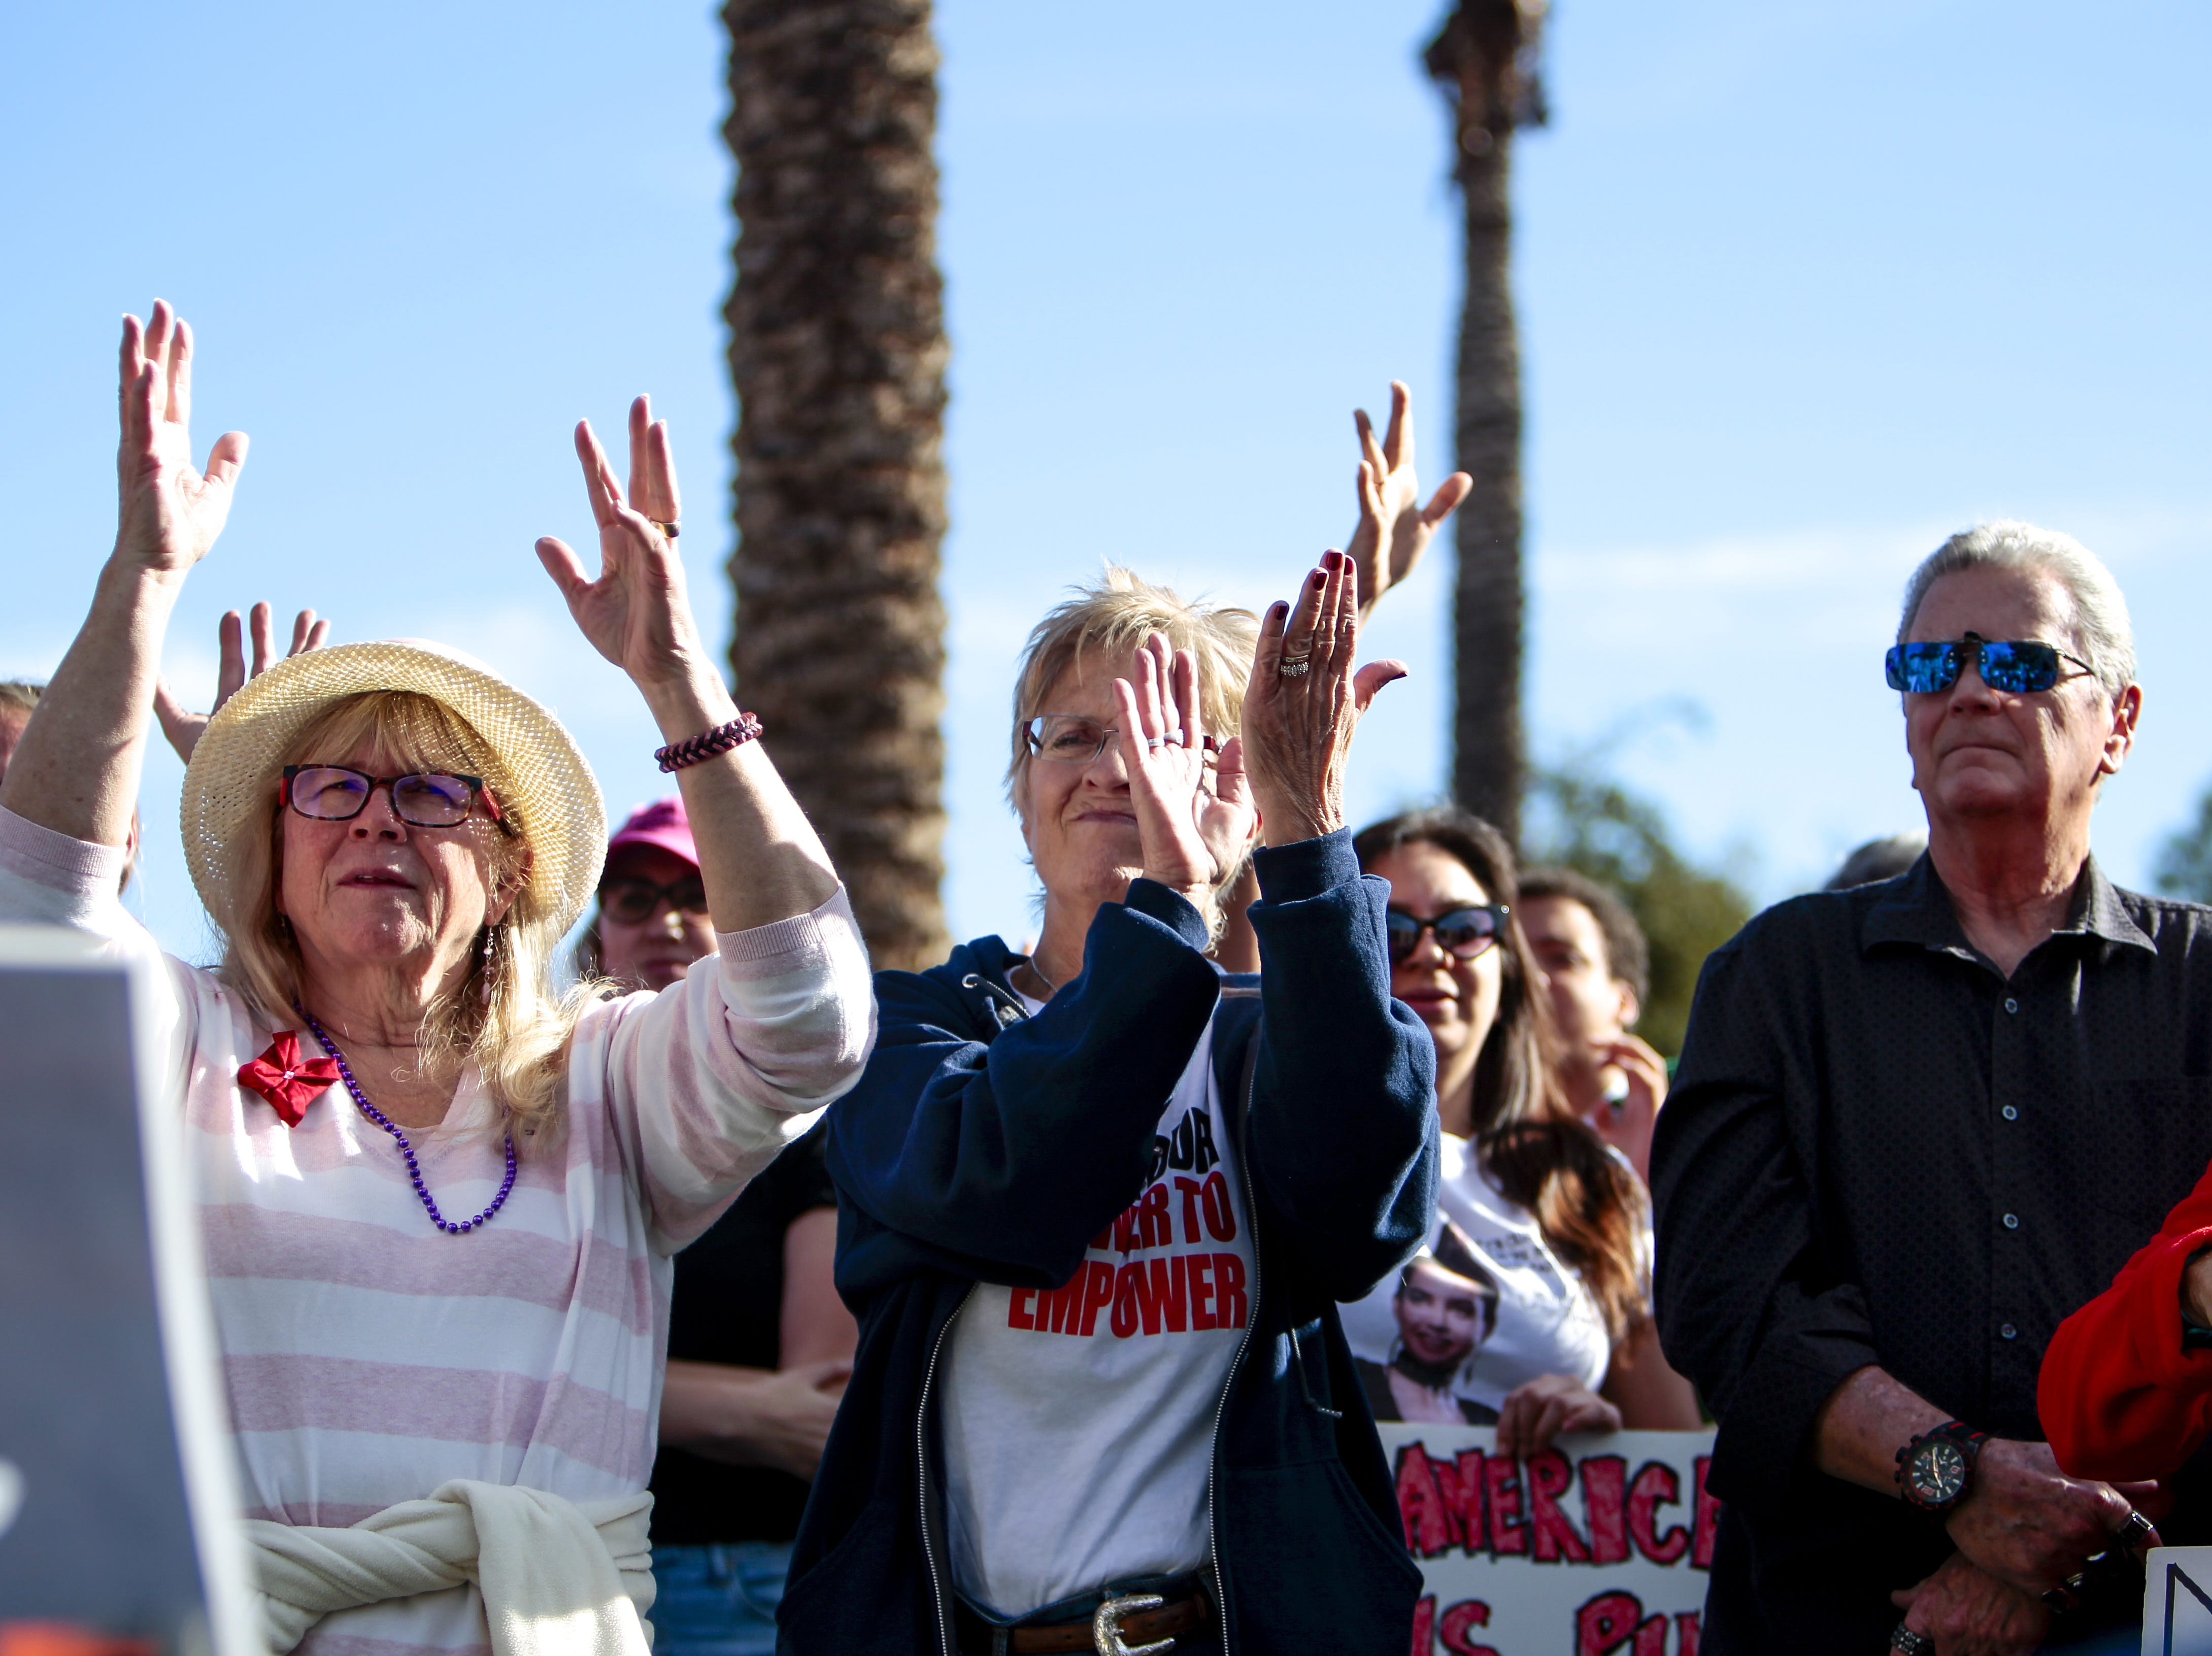 The crowd cheers in sign language during Sherri Collins' speech about the difficulties women with disabilities face at the Phoenix Women's March on Jan. 19, 2019, at the Arizona Capitol.